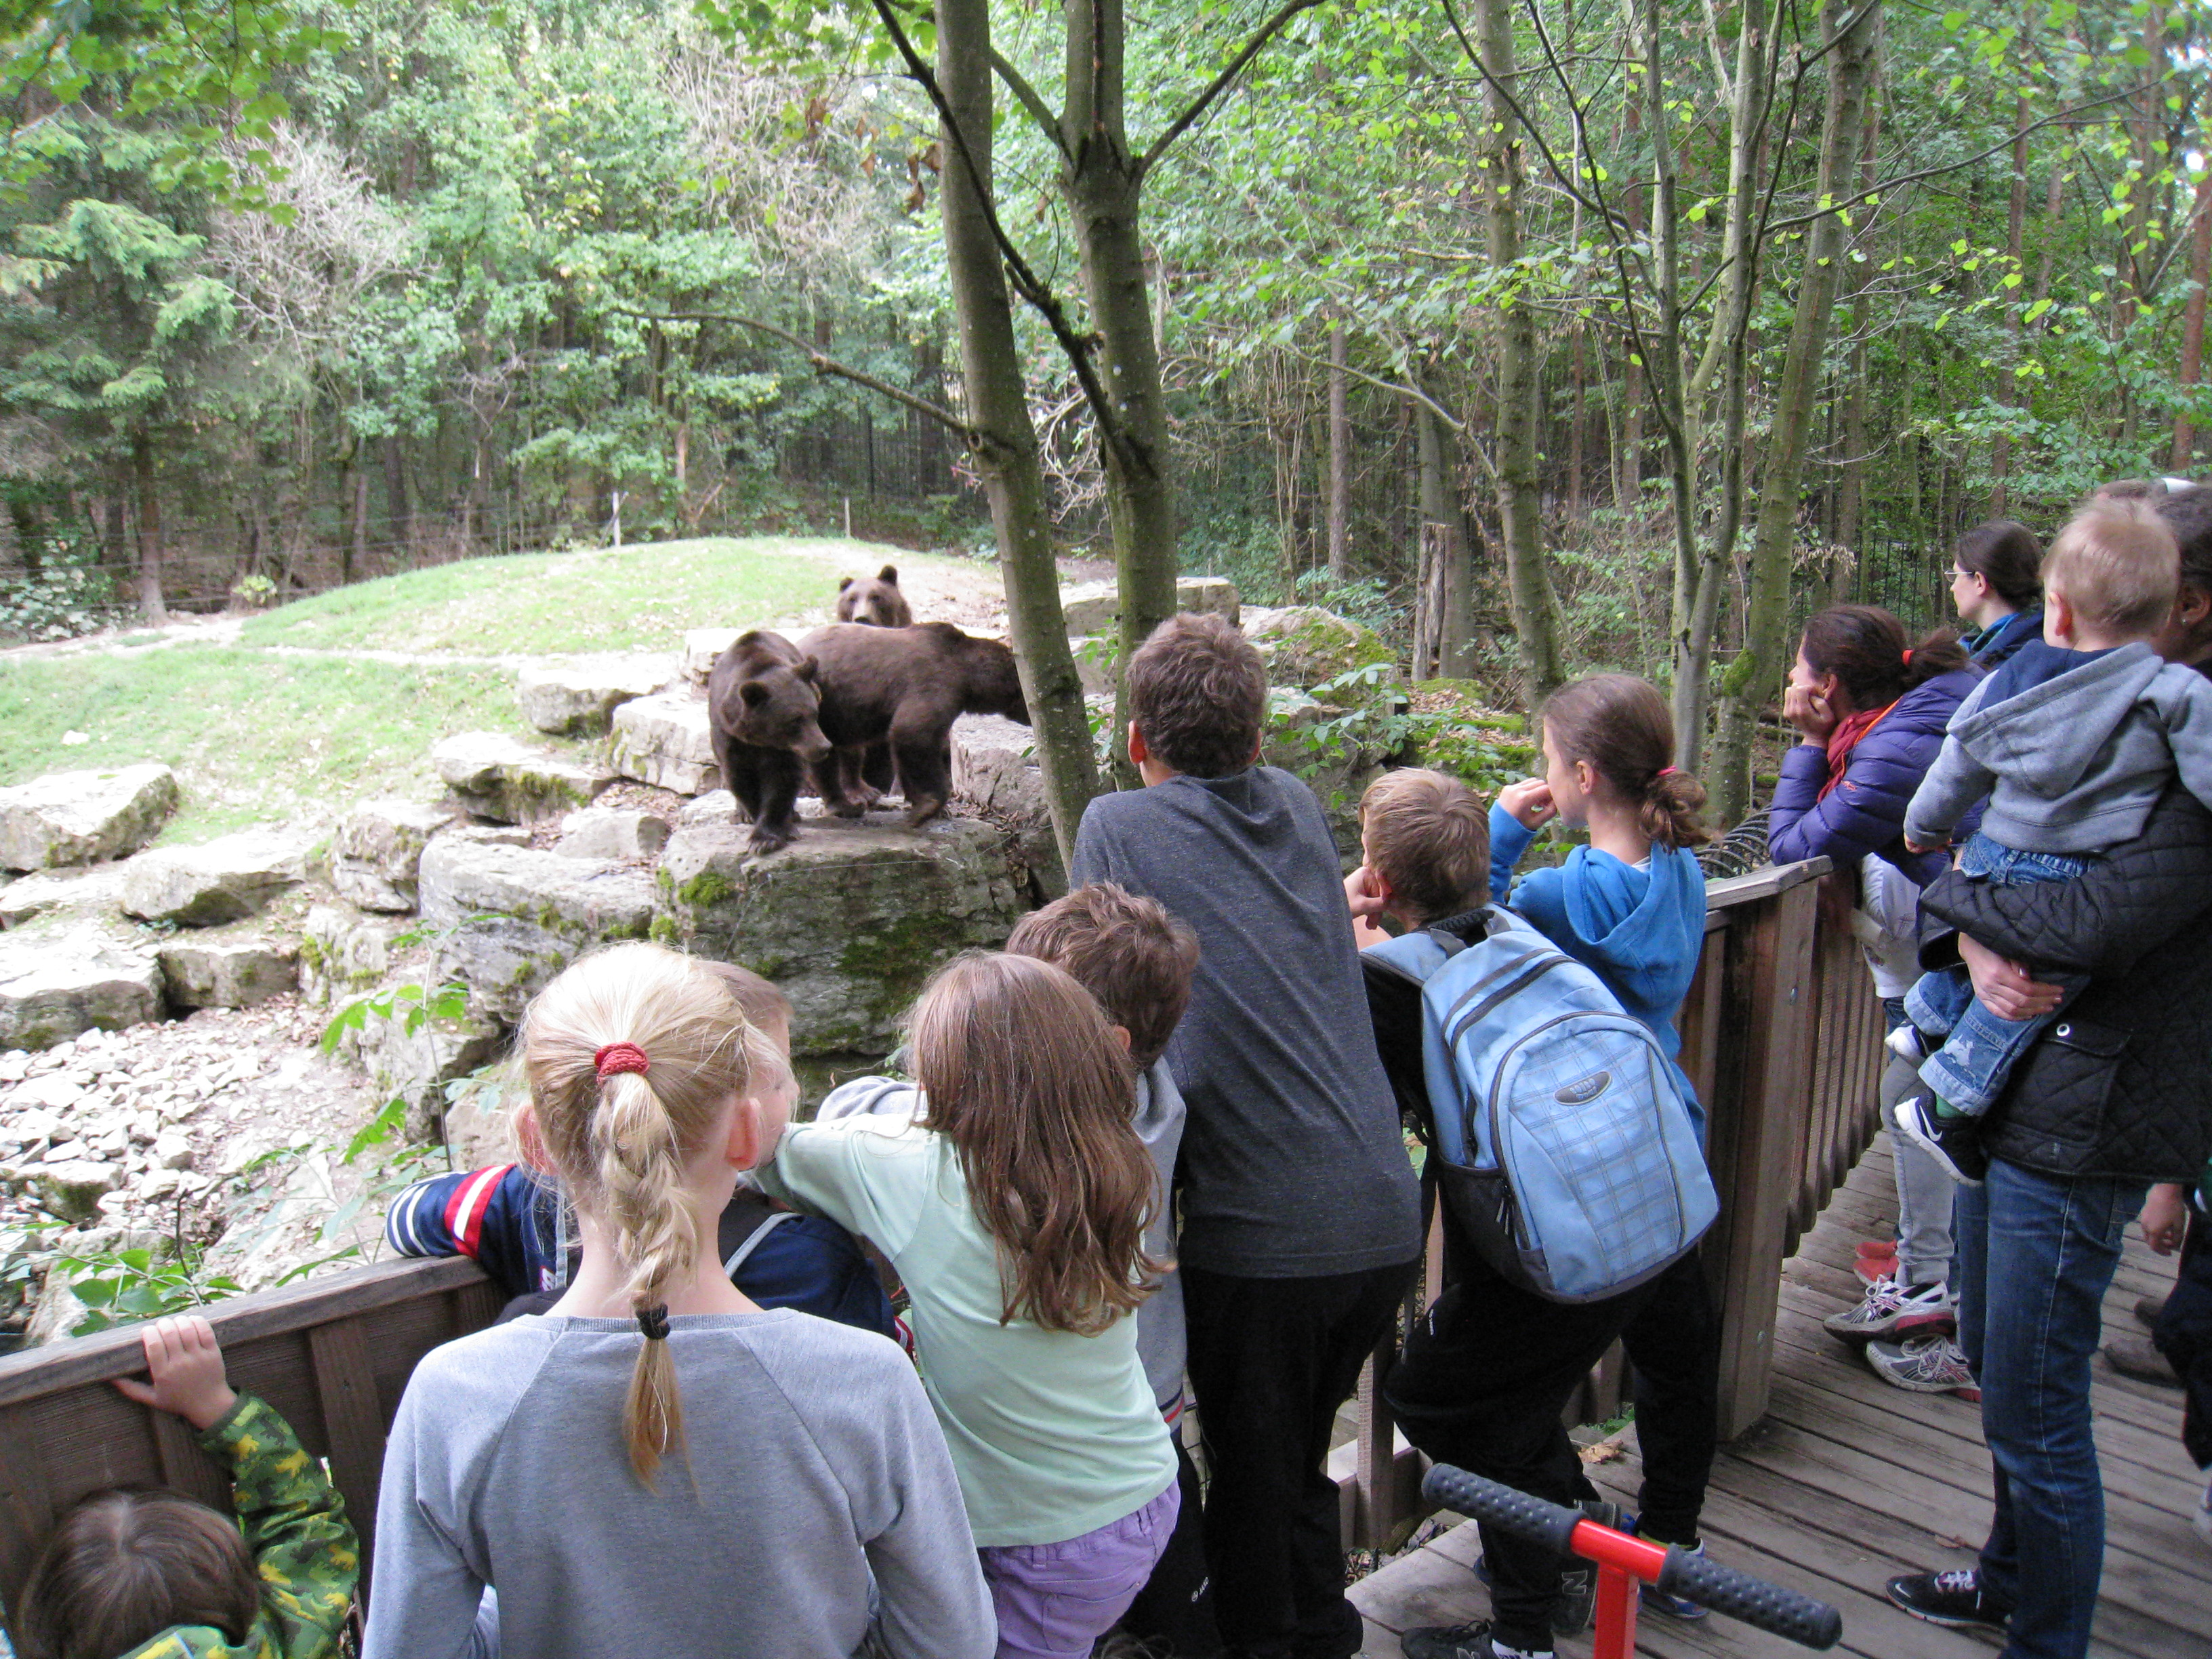 Wildparkbesuch - Bad Mergentheim(103)